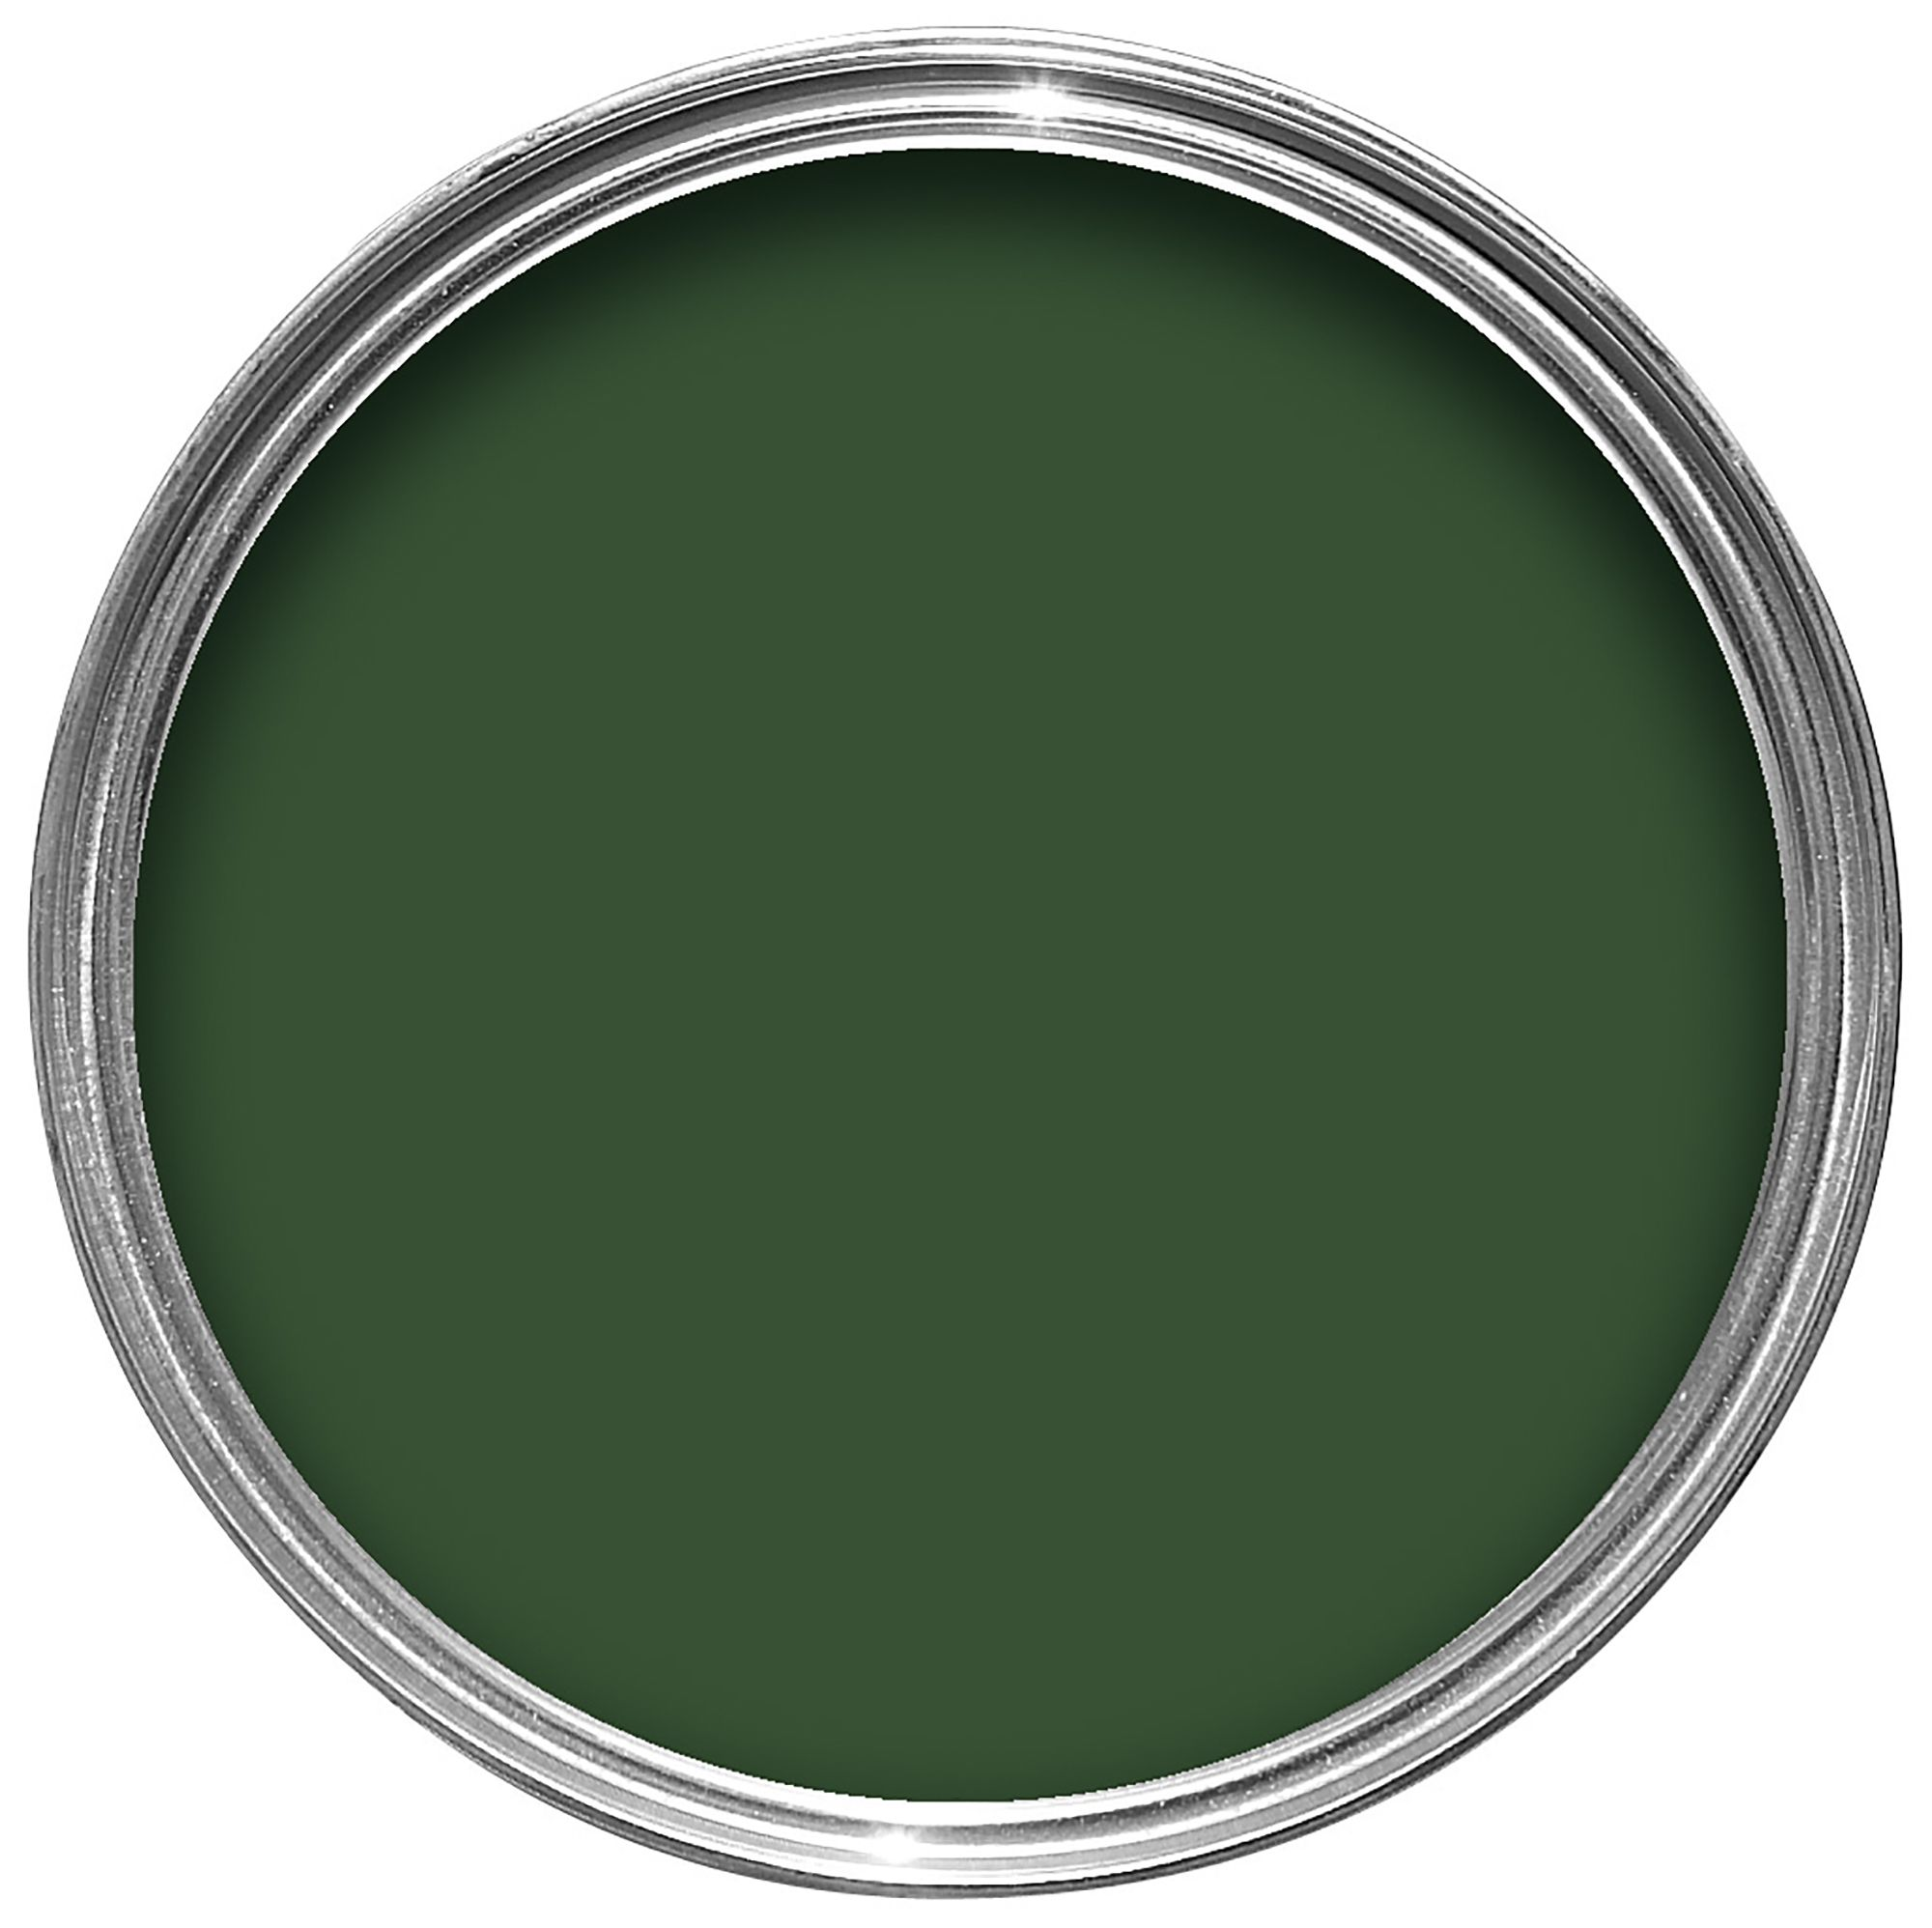 Colours Exterior Buckingham Green Gloss Wood Metal Paint Departments Tradepoint